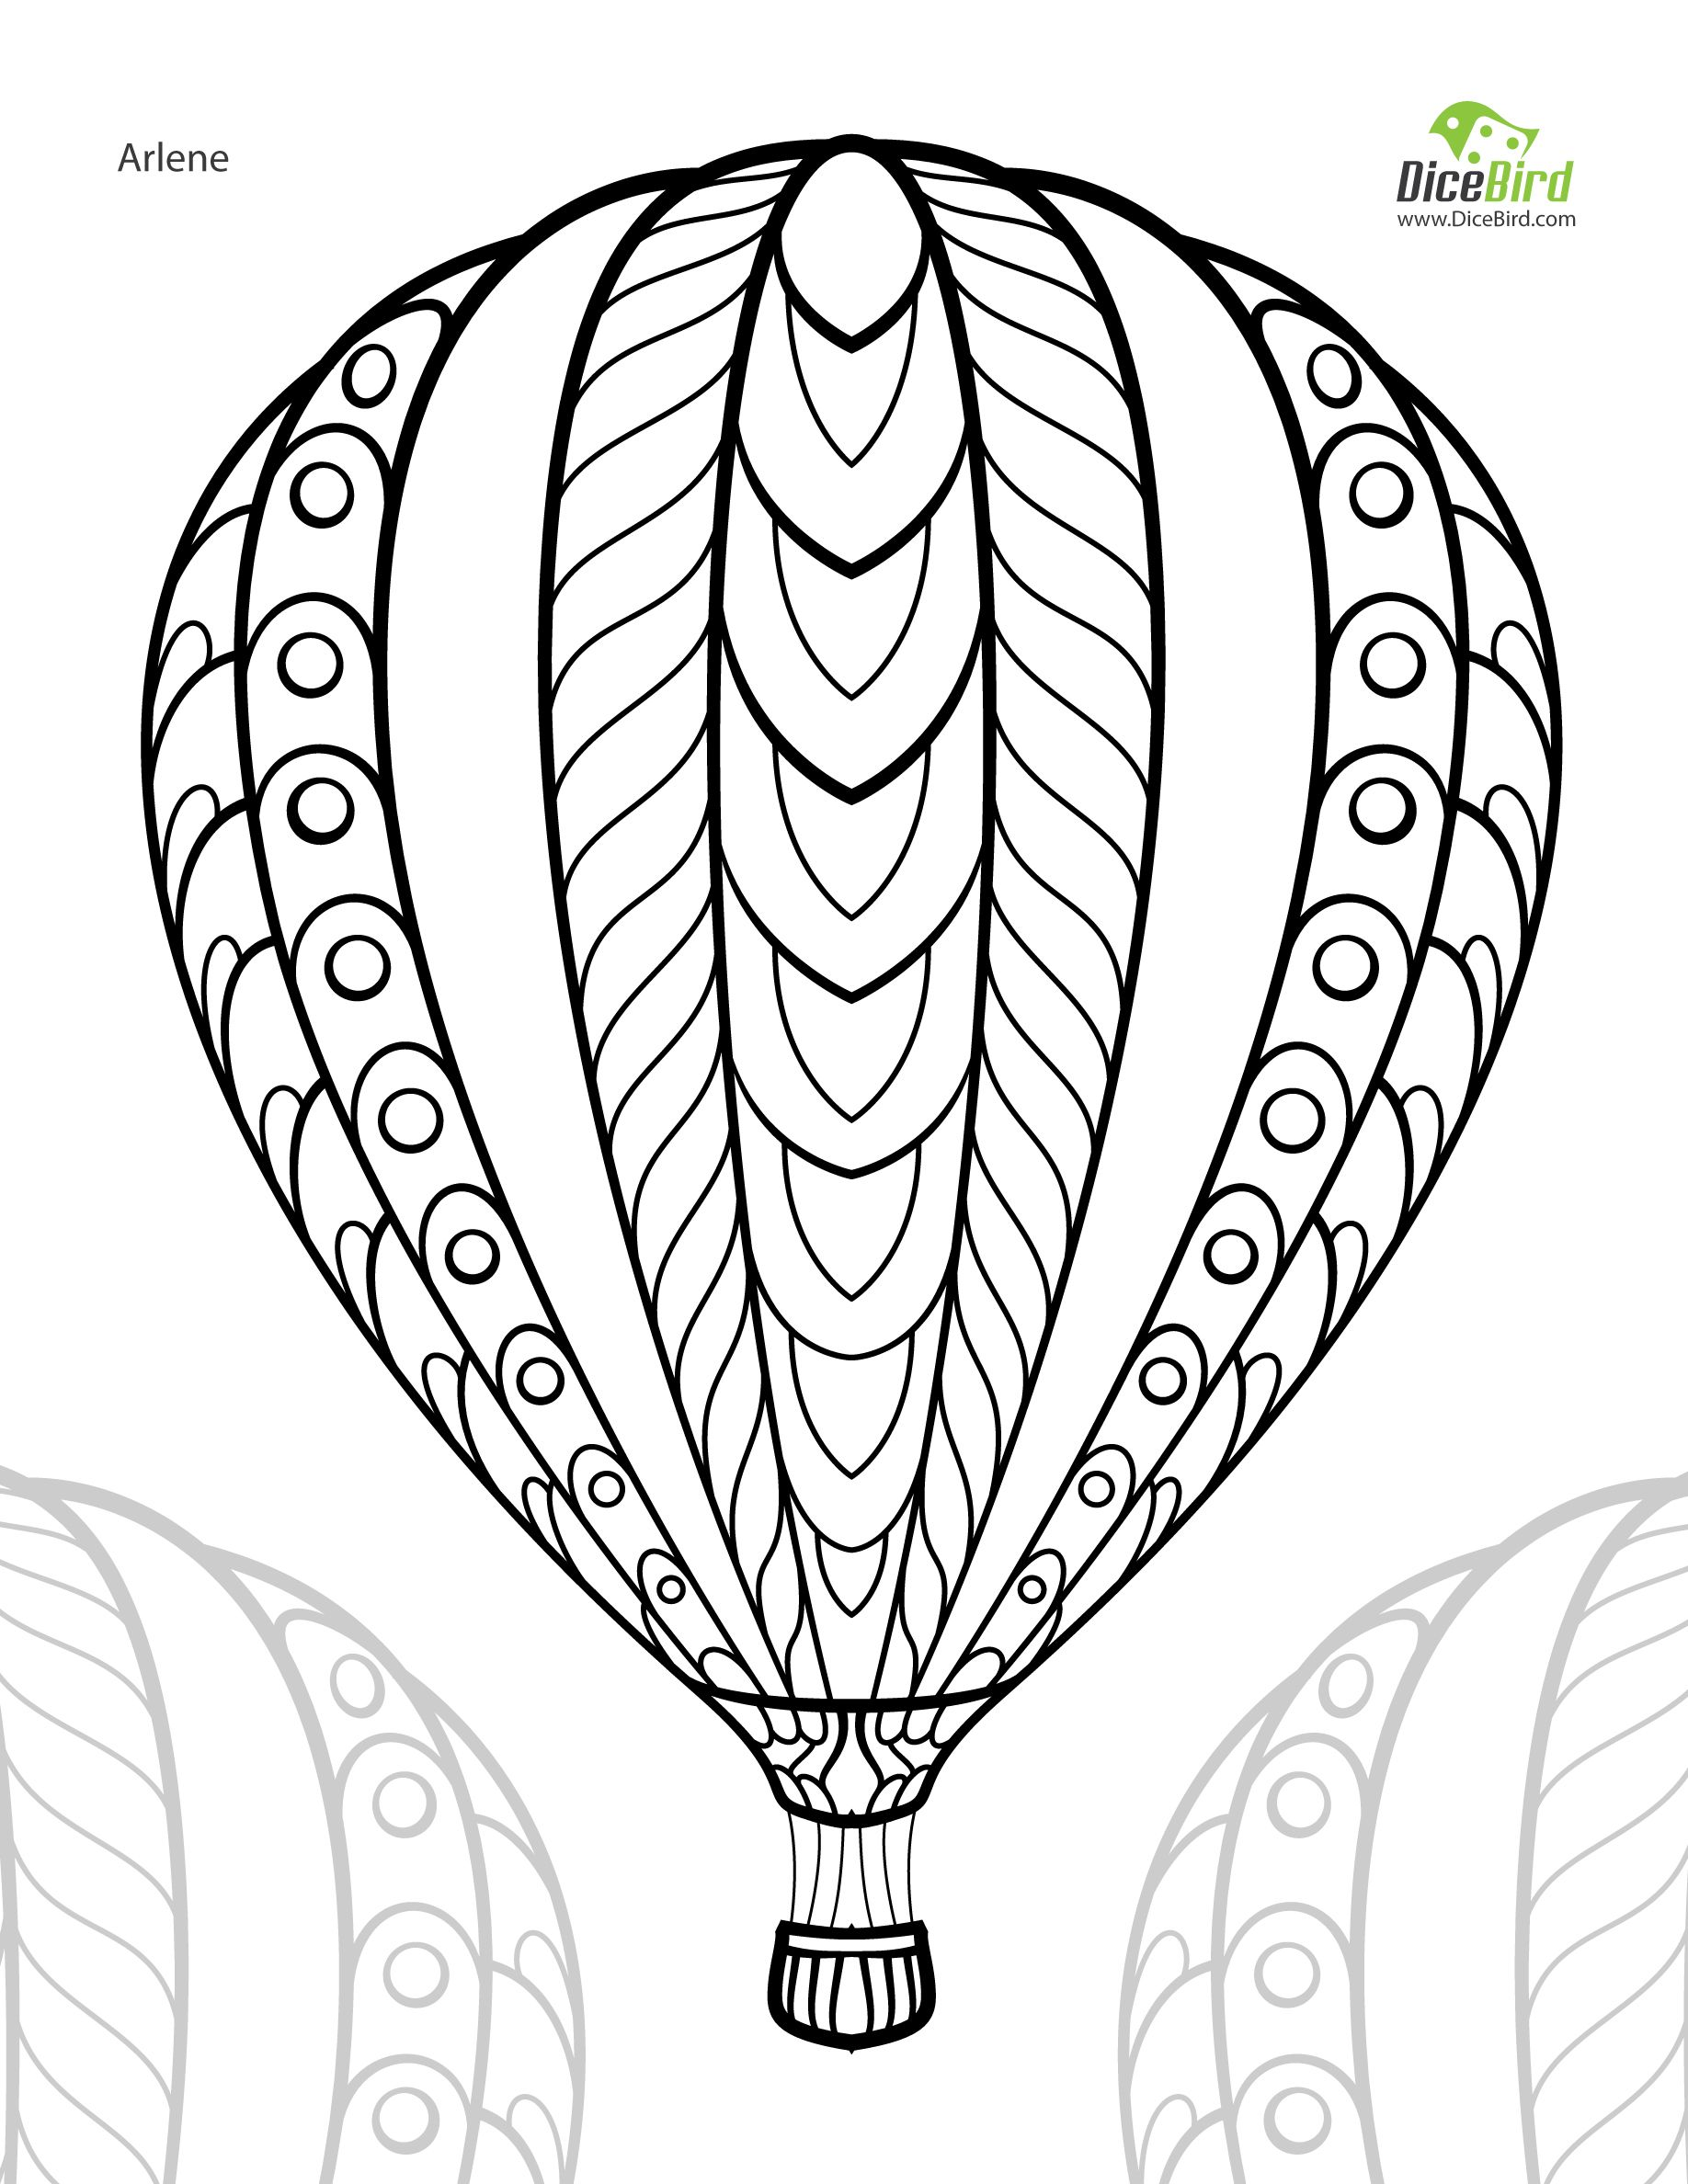 Kids coloring book pages free - Hot Air Balloon Adult Free Printable Colouring Page Kids Coloringcoloring Sheetsadult